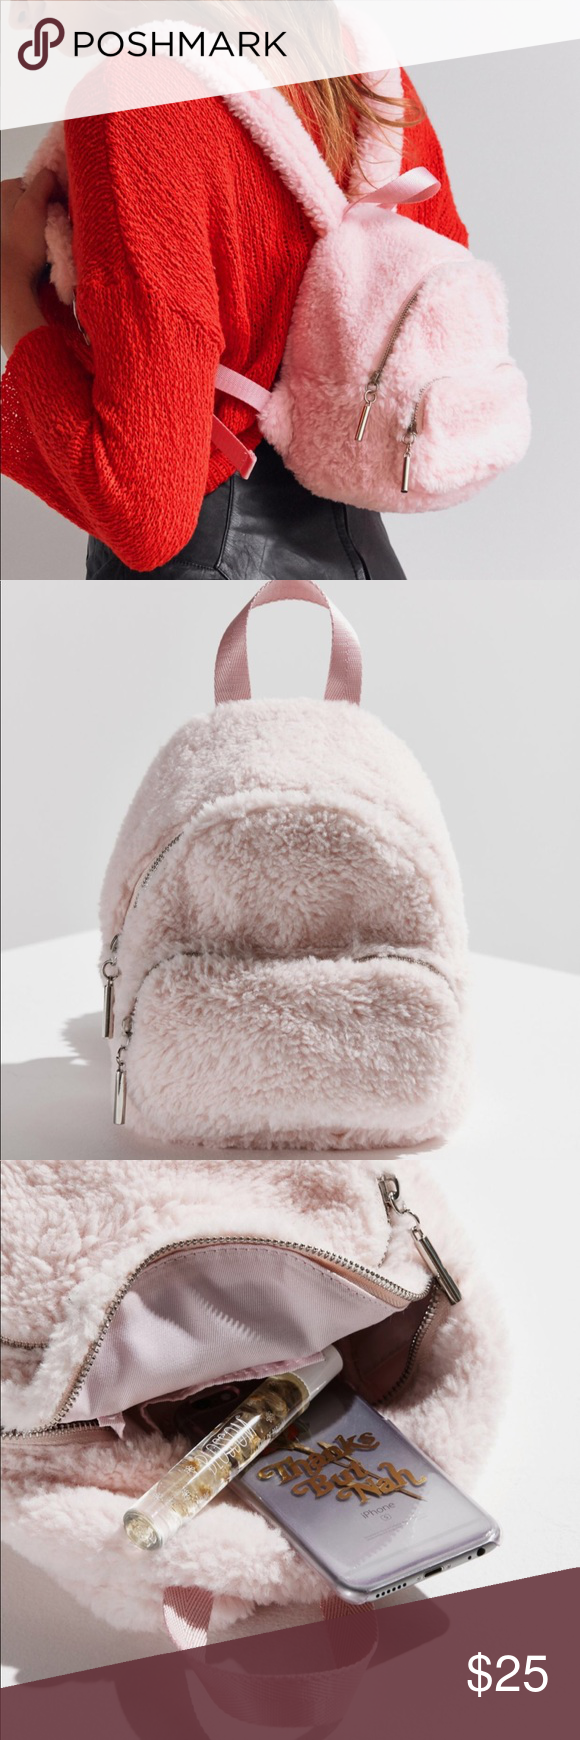 5ebcdb7478ca Fluffy Pink Mini BackPack - Urban Outfitters Fluffy Pink Mini Backpack  bought at Urban Backpack. Channel your inner Cher from Clueless with this  faux fur ...